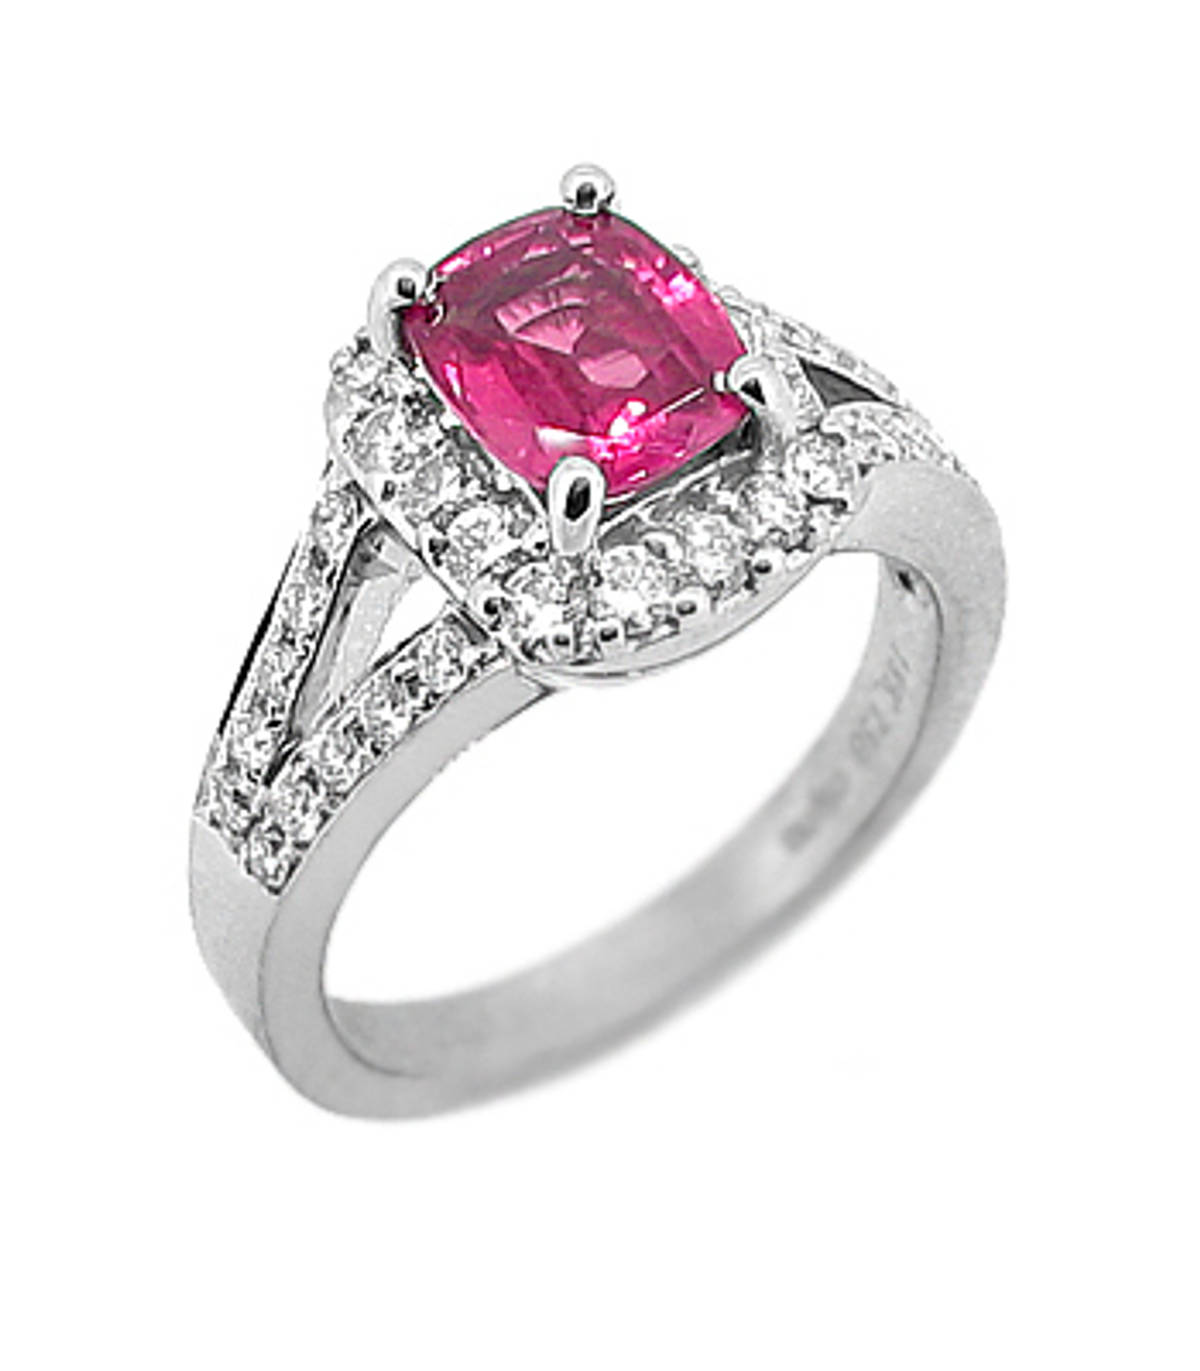 Pink sapphire and diamond cluster ringPictured item: pink sapphire: 1.51ct/diamonds: 0.61ct set in 18k white gold